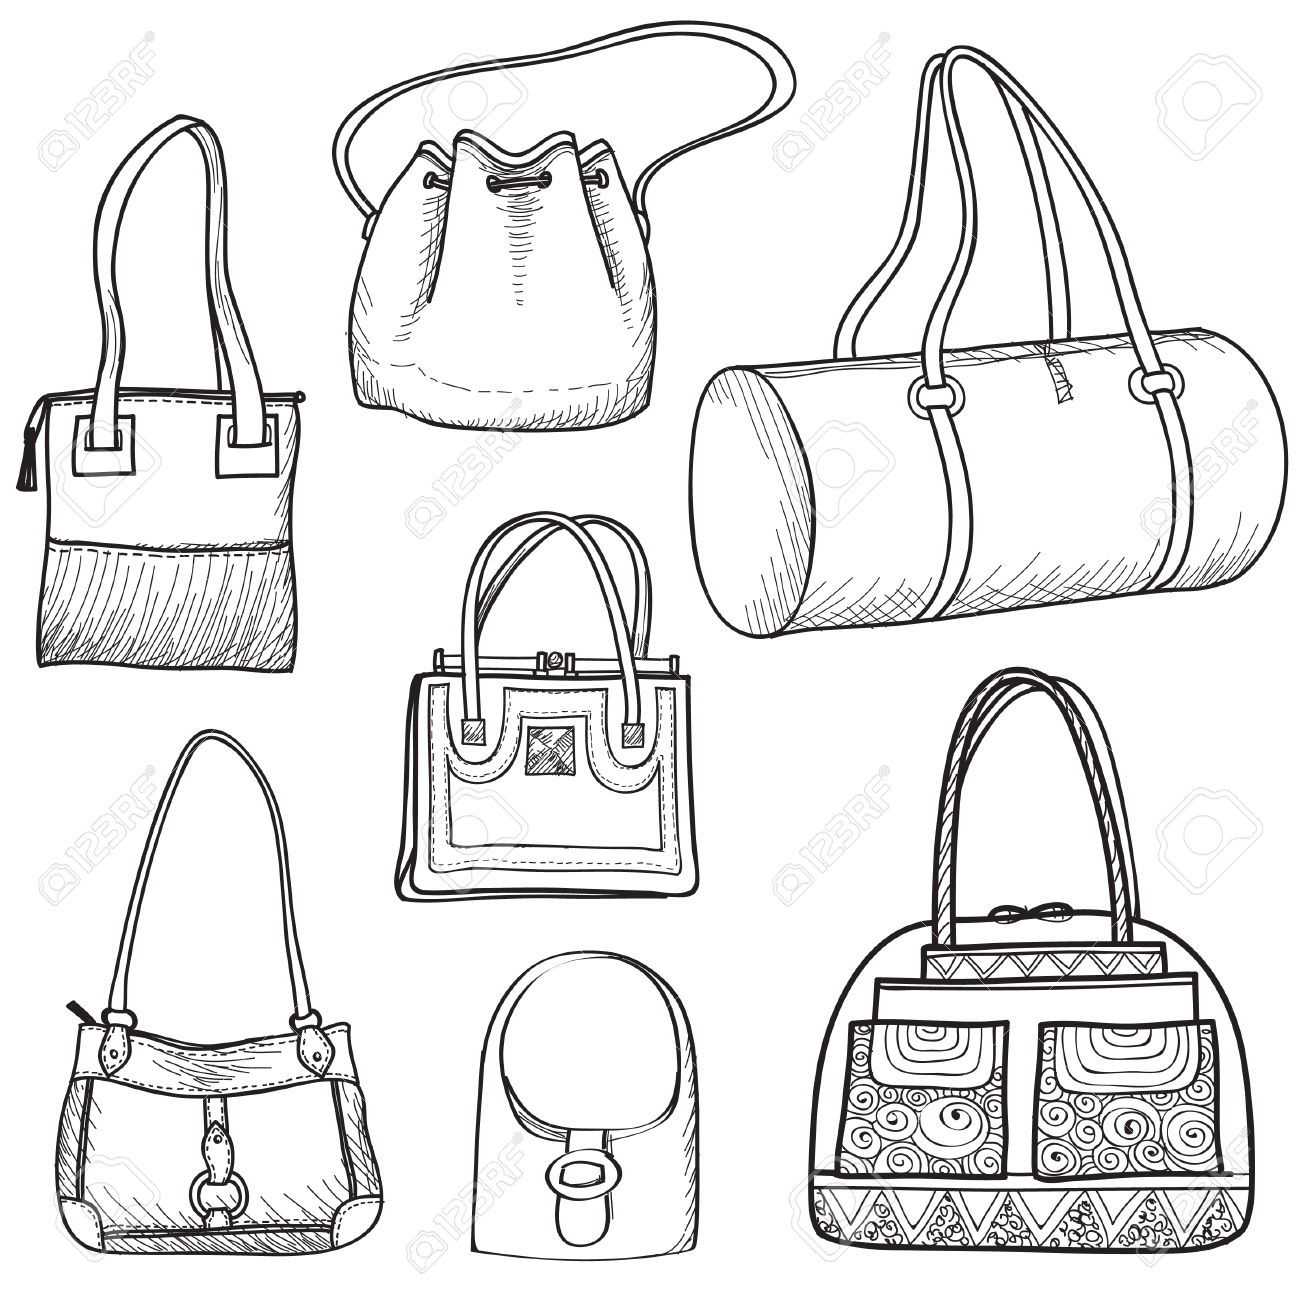 Drawn purse Http://previews 123rf 123rf  com/images/terriana/terriana1402/